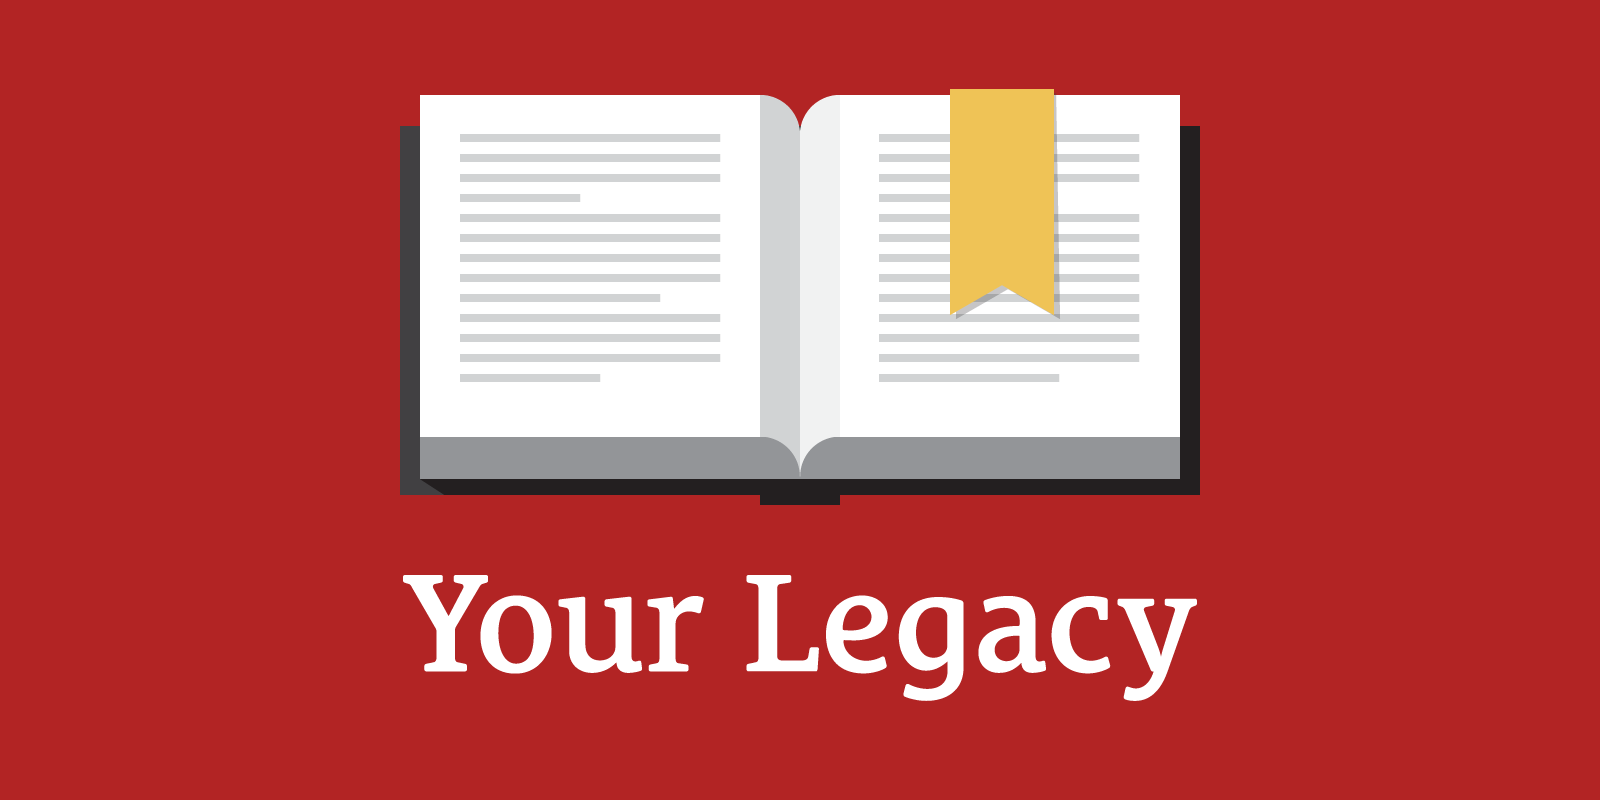 Building a Lasting Legacy